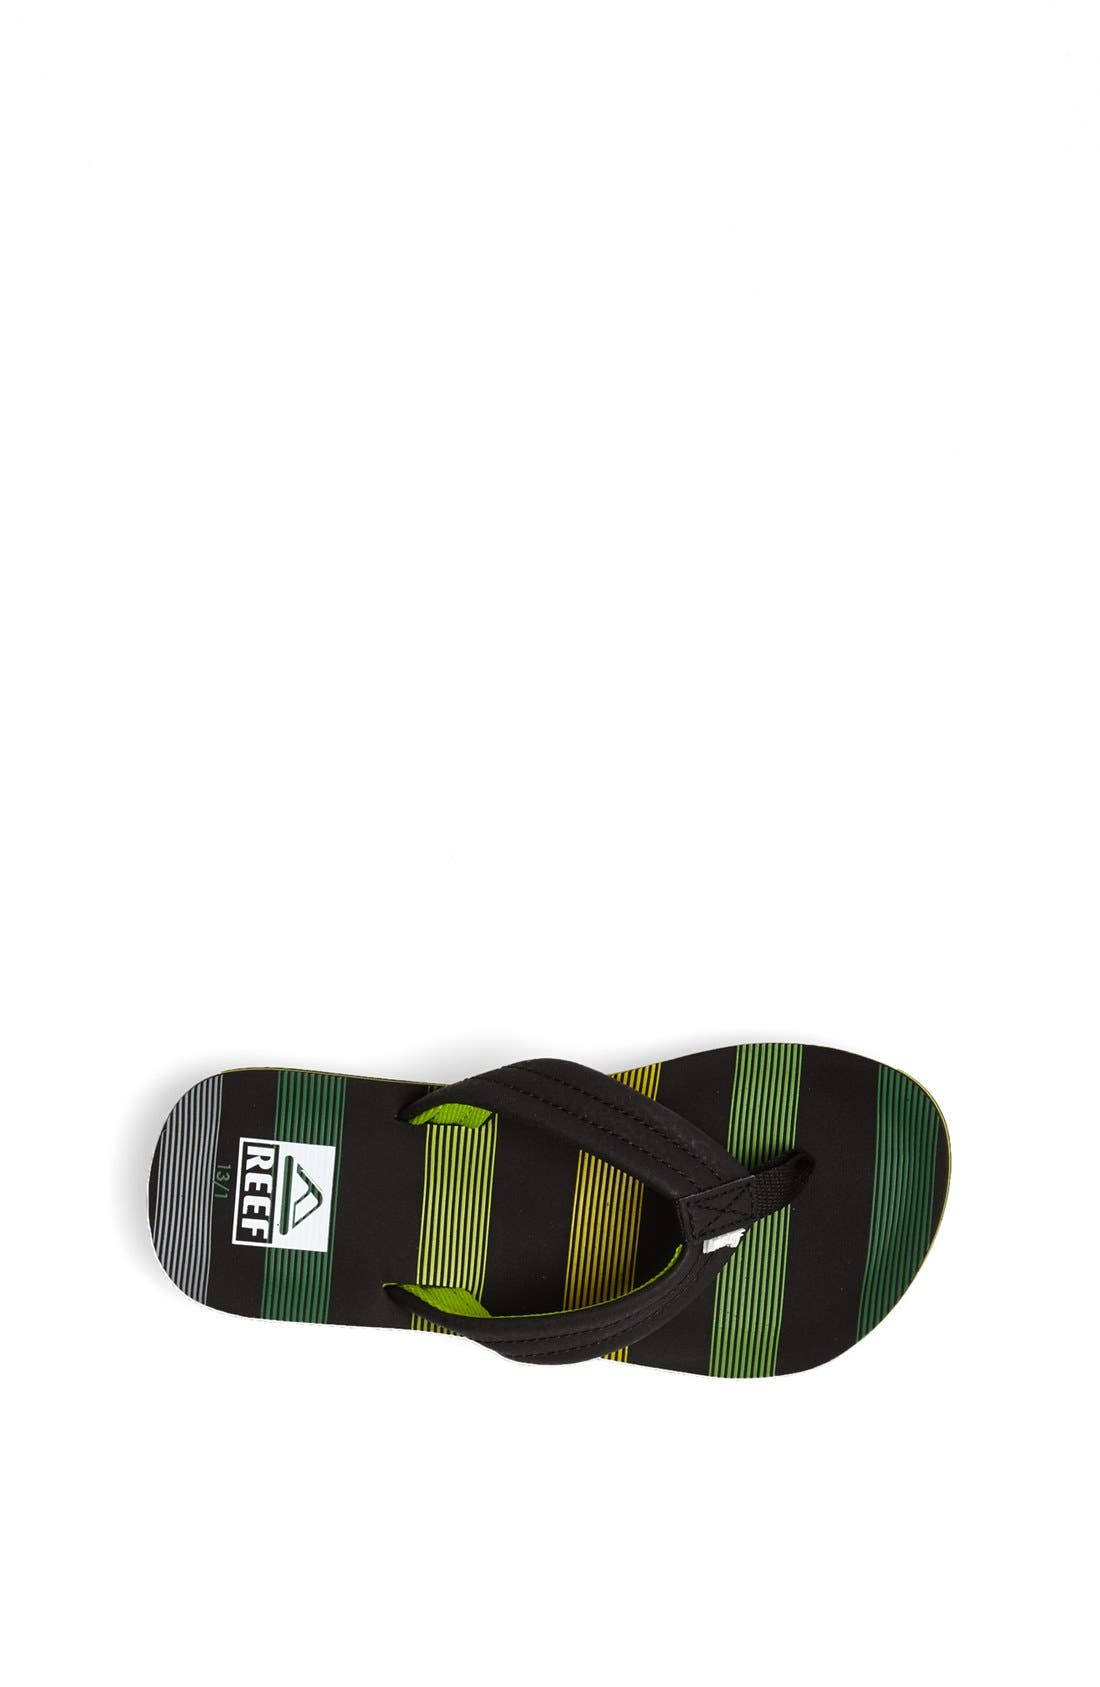 Alternate Image 3  - Reef 'Ahi' Sandal (Baby, Walker, Toddler, Little Kid & Big Kid)